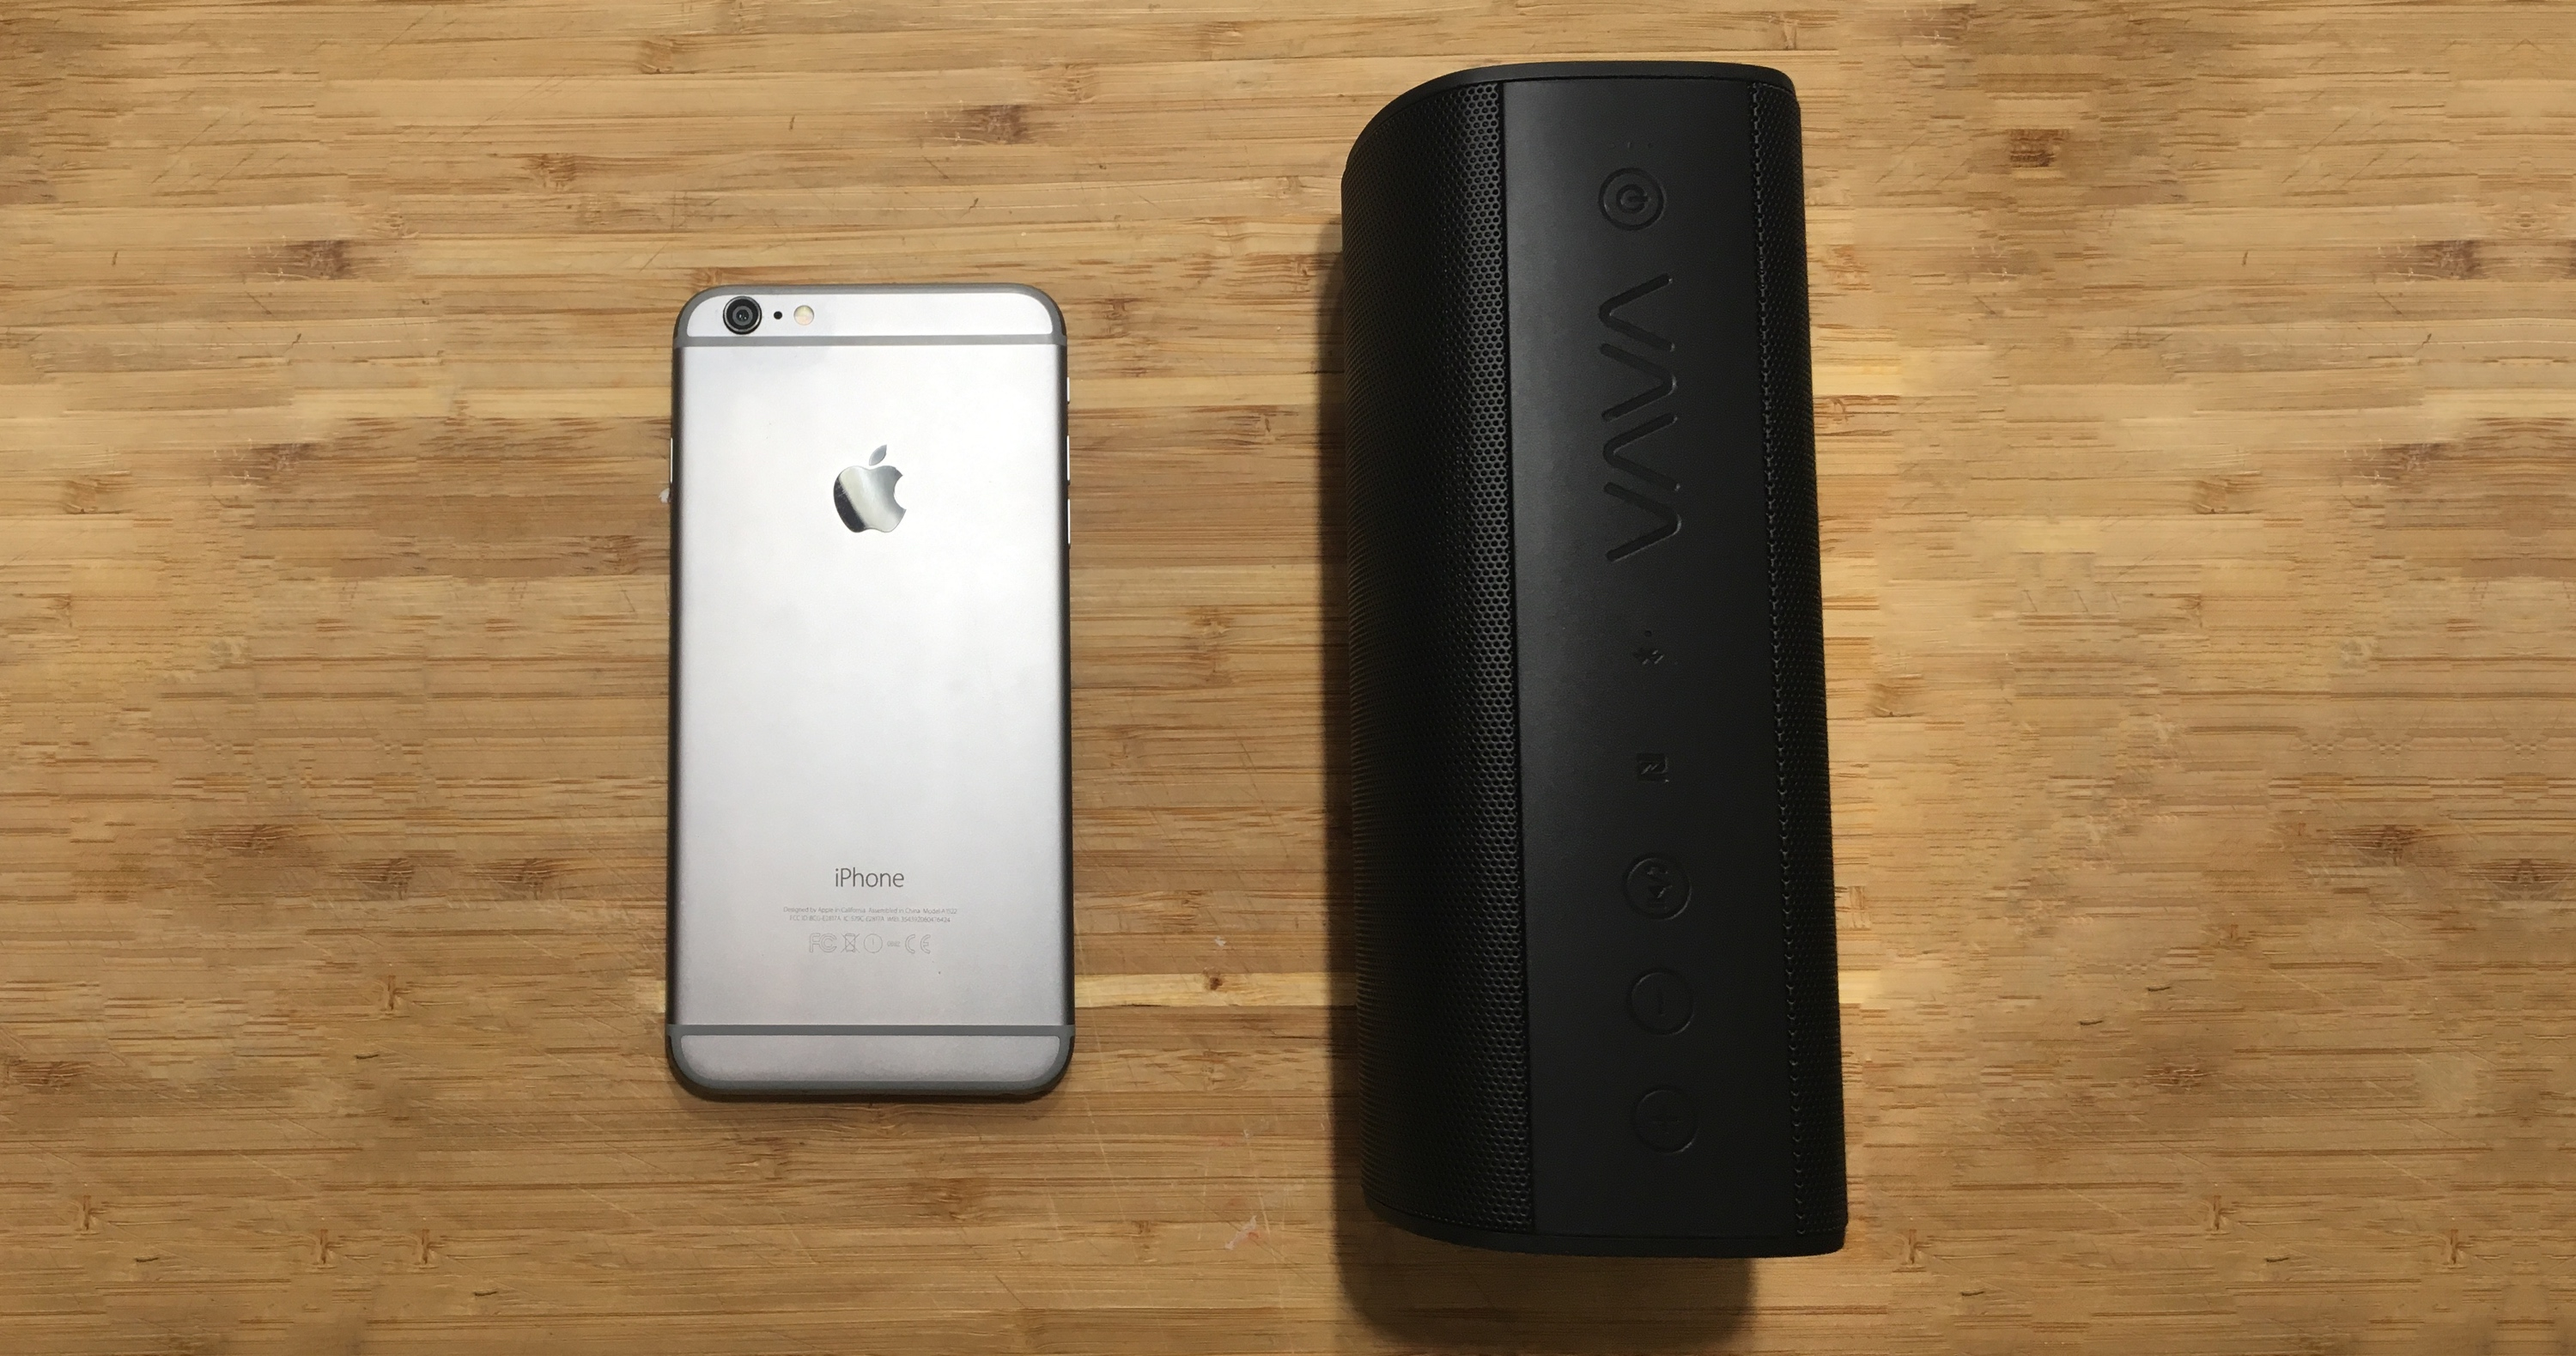 VAVA Voom 20 Portable Bluetooth Speaker, Full Sound & Water Resistant